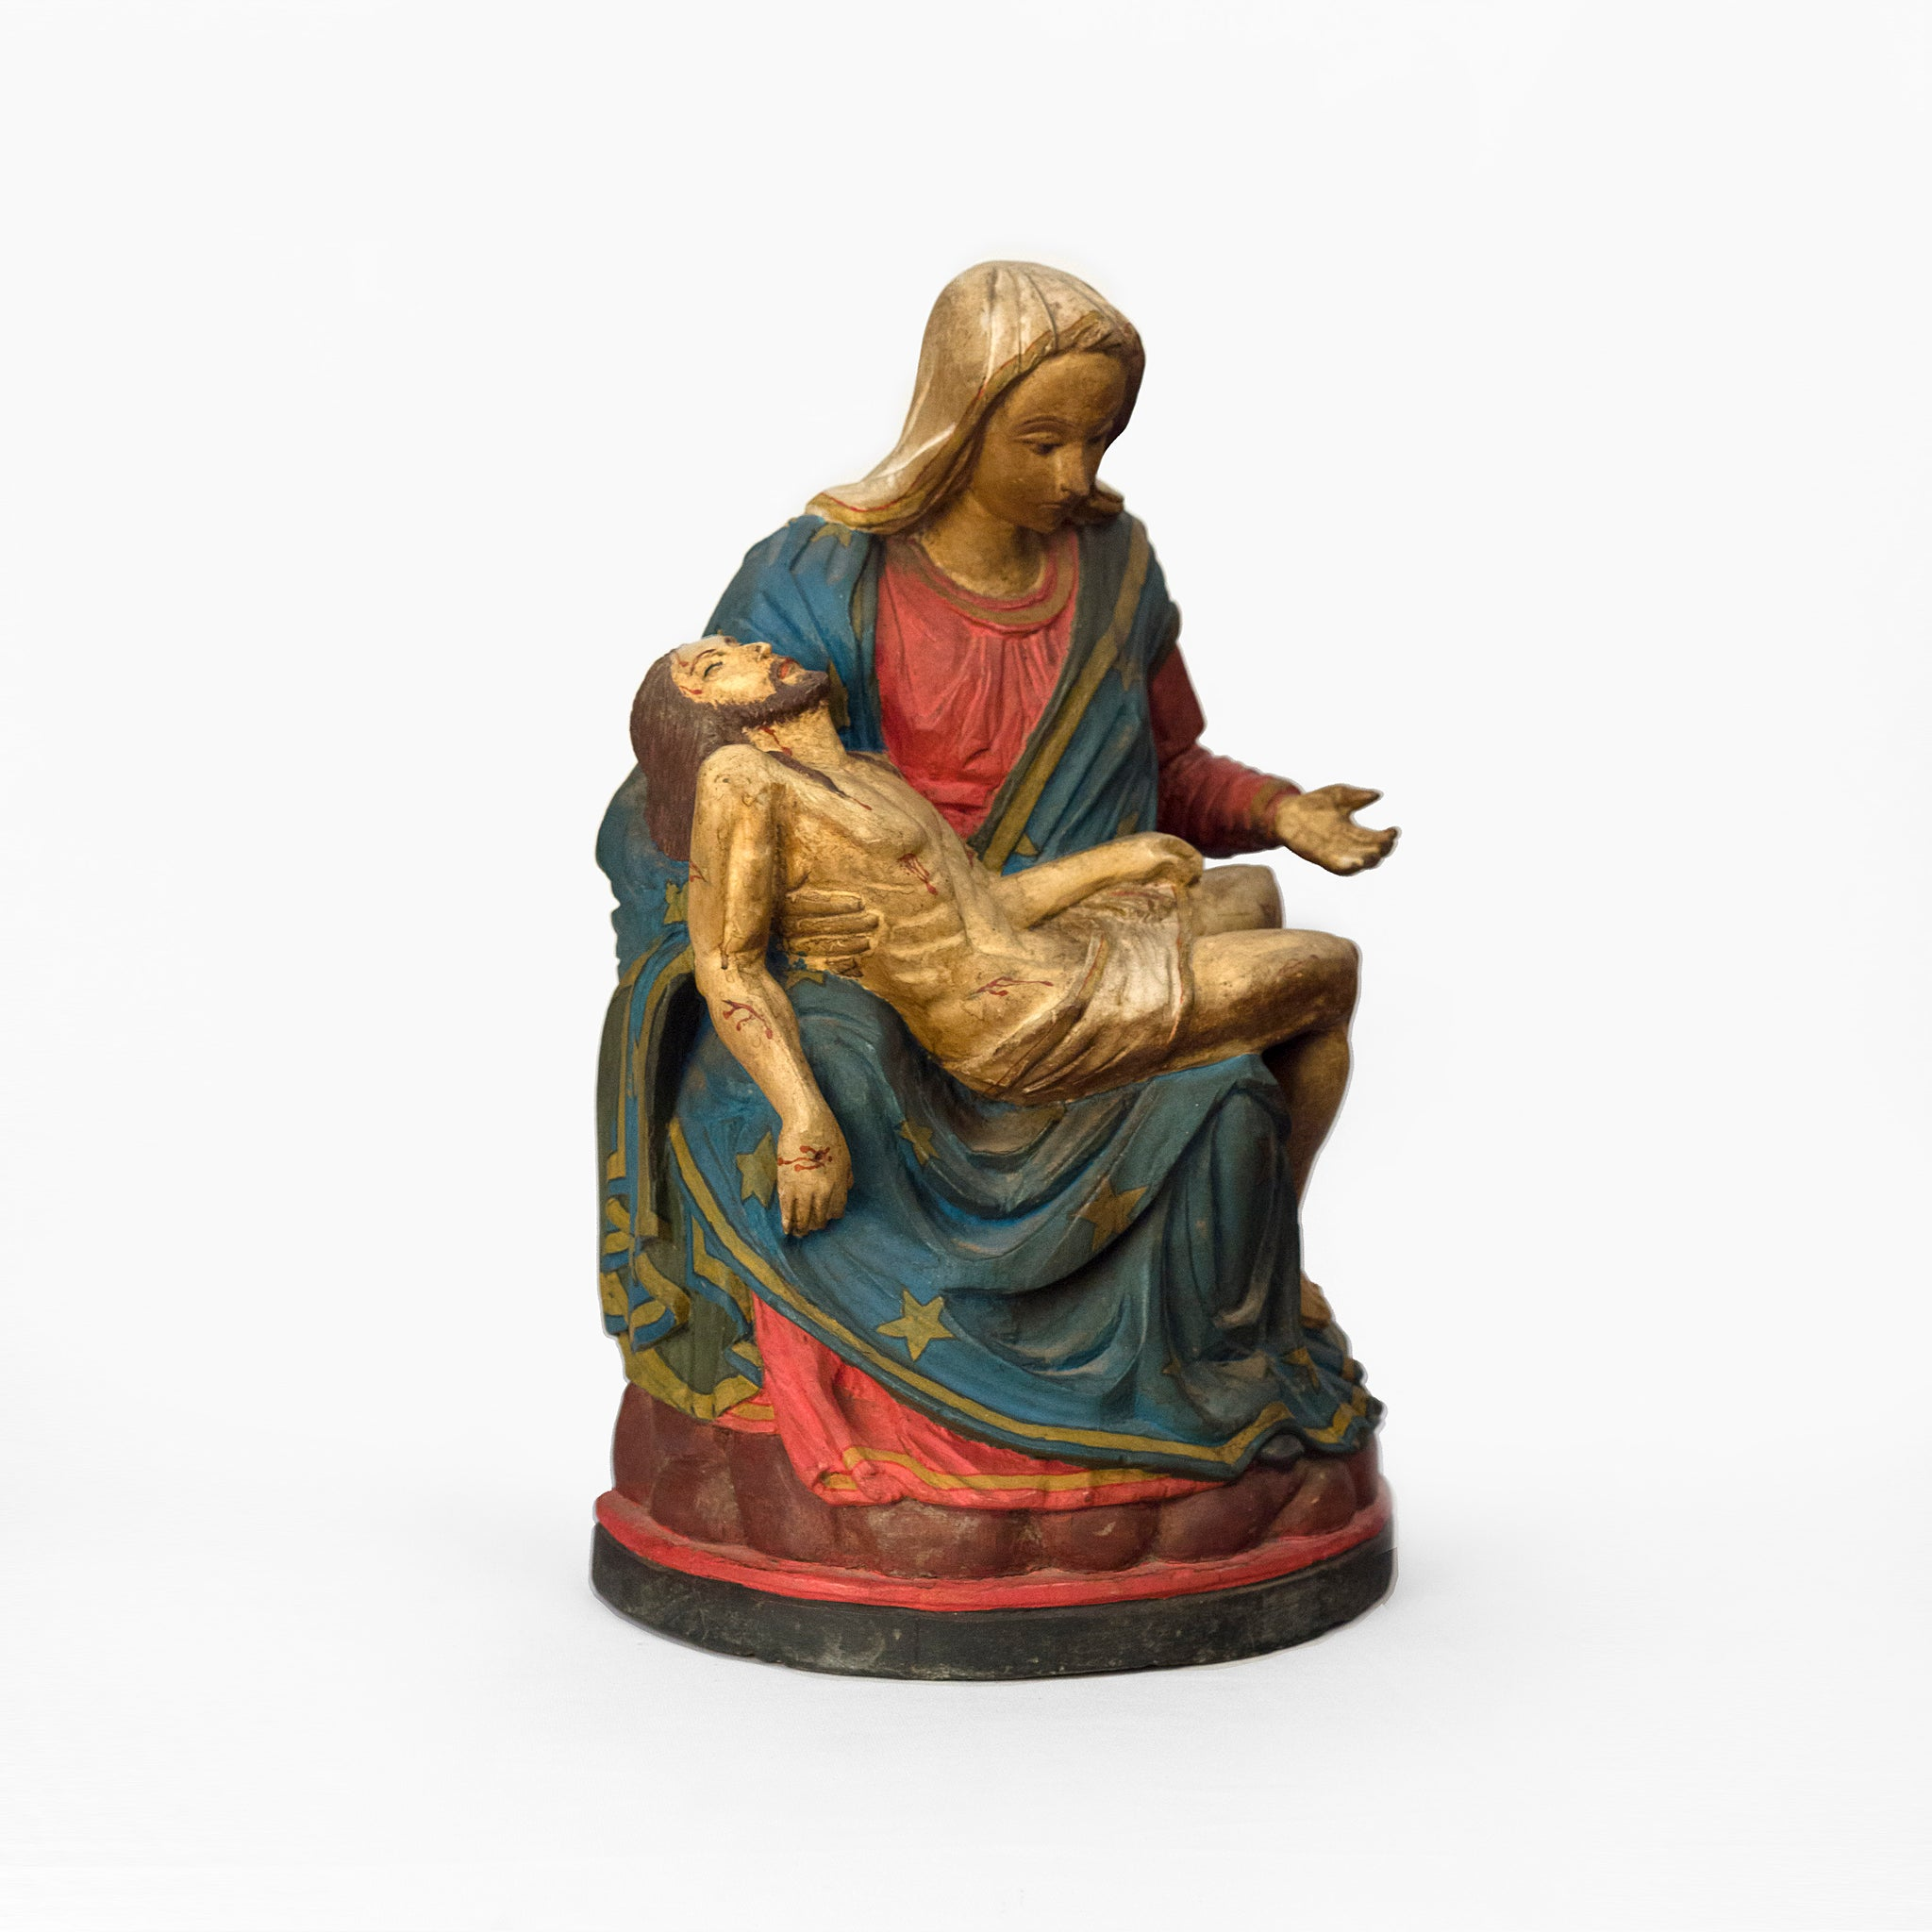 WOODEN IDOL OF MOTHER MARY WITH JESUS